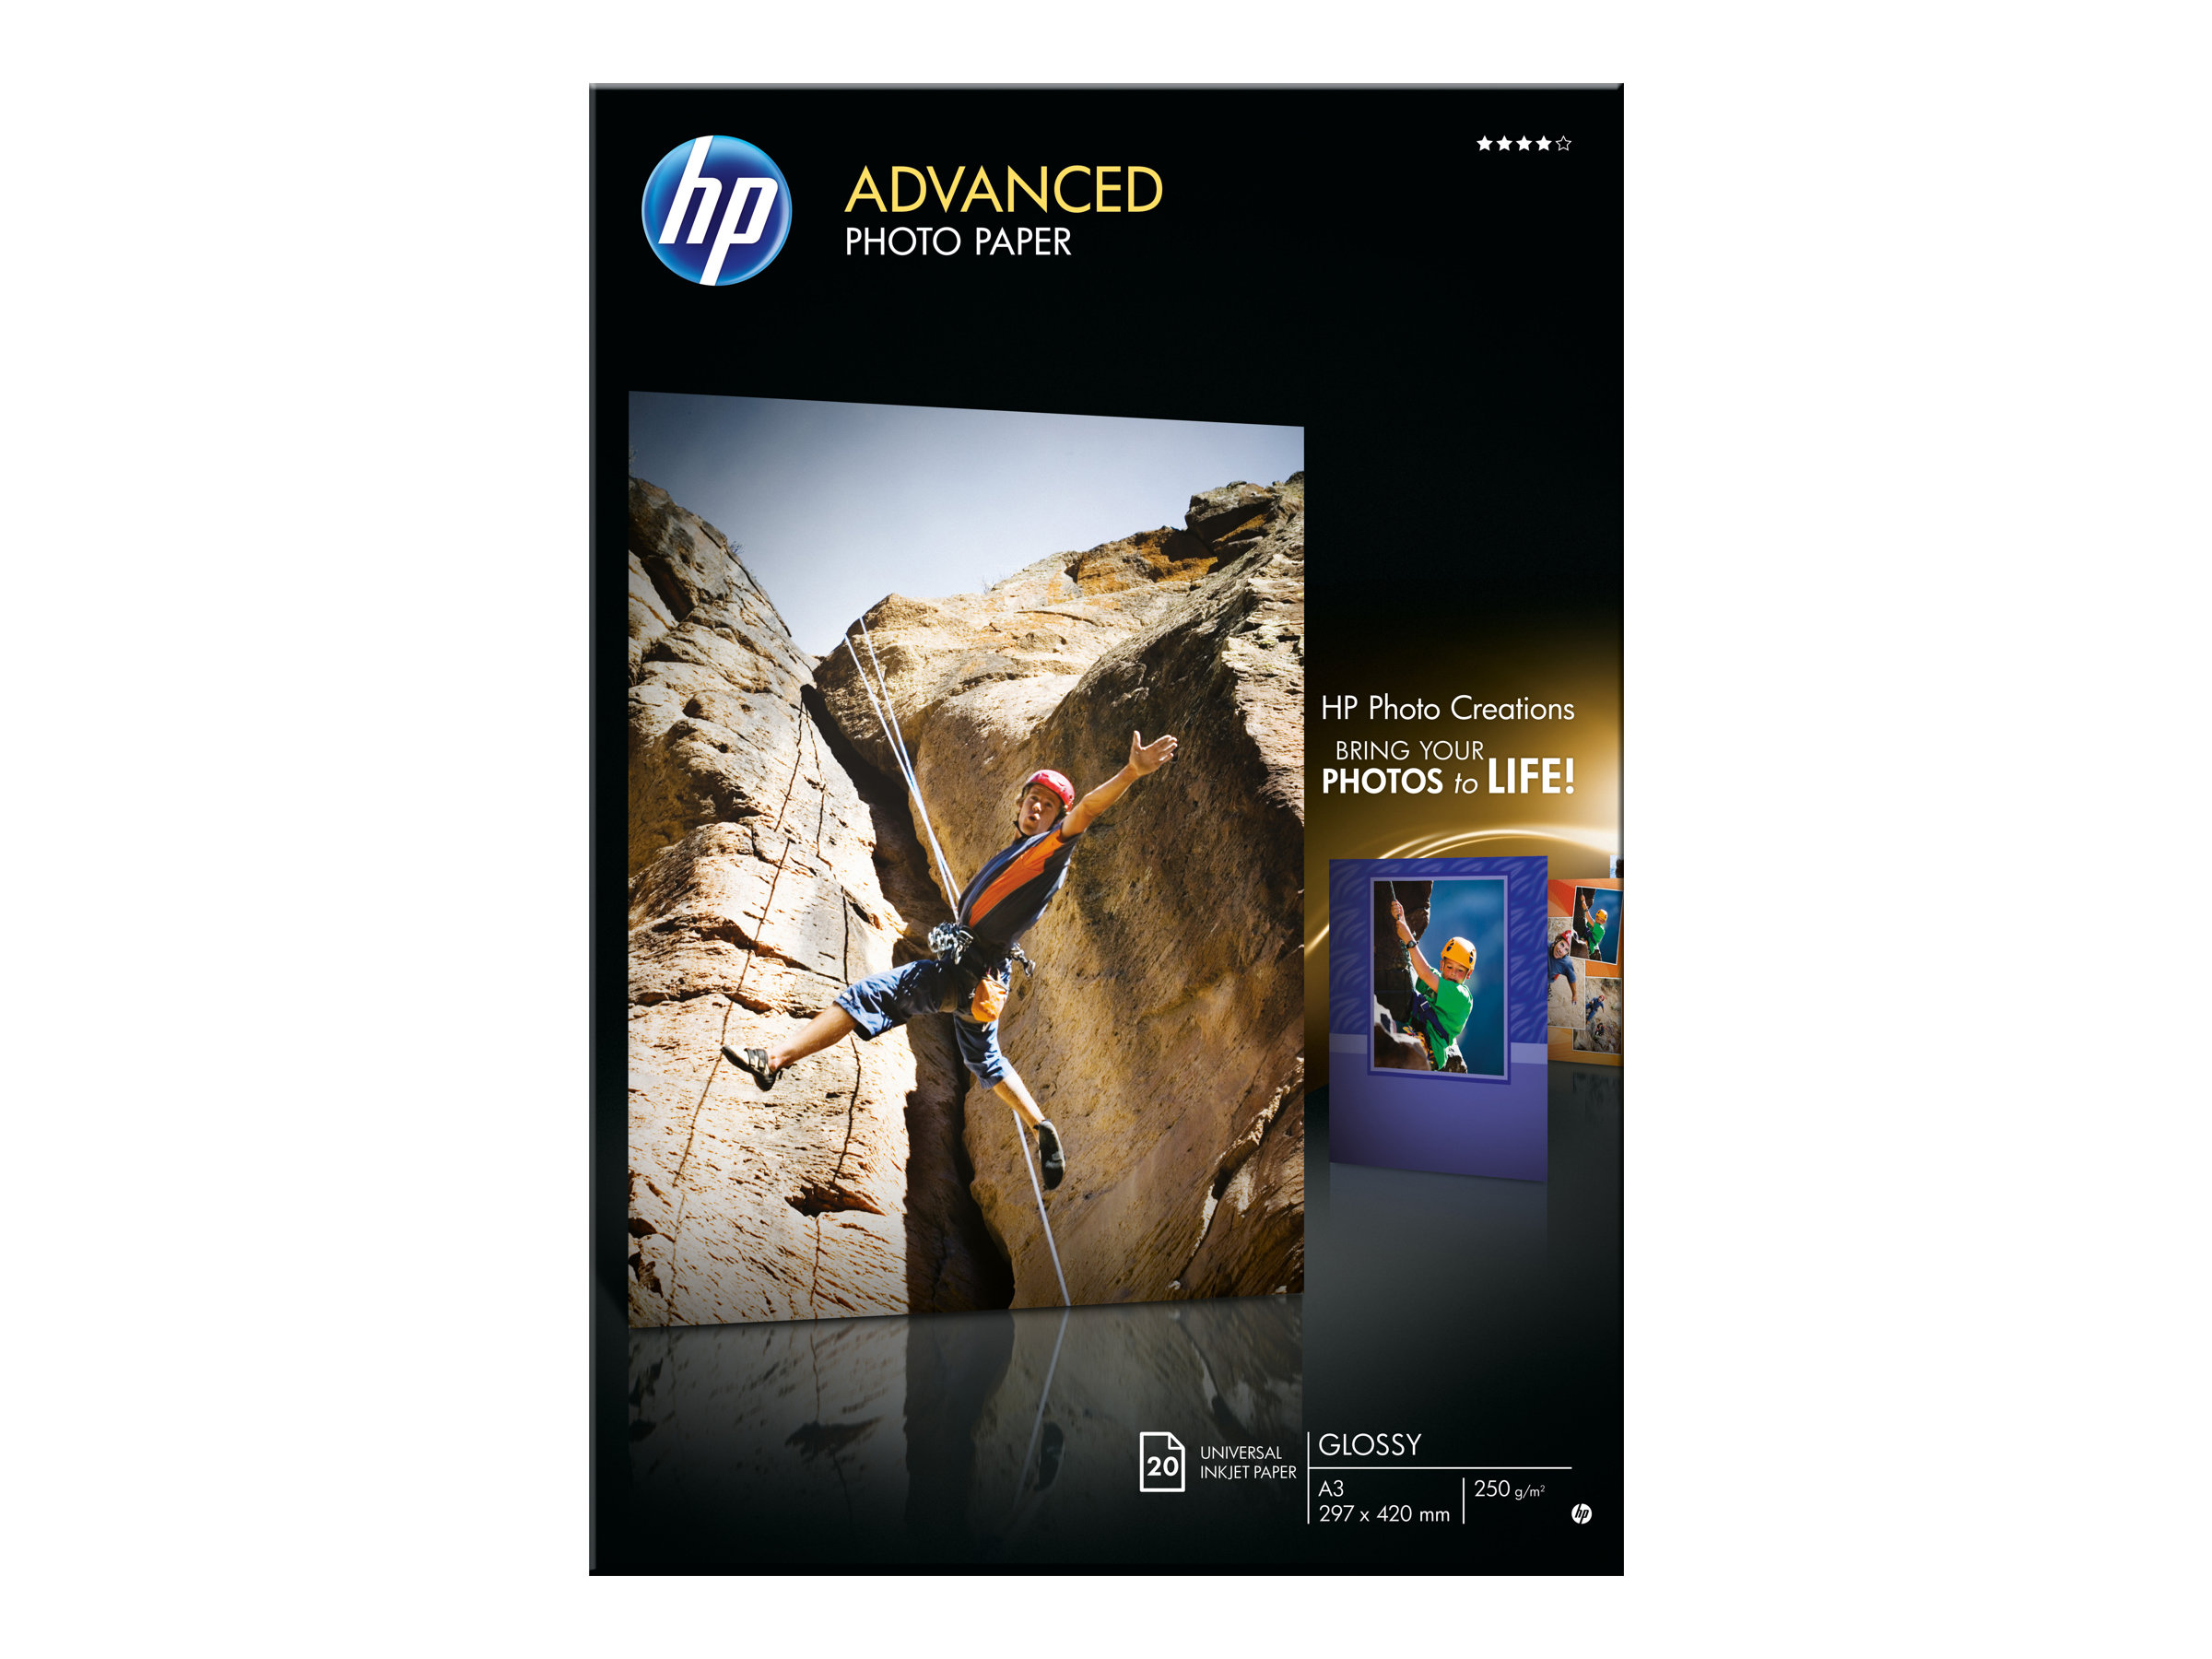 HP Advanced Photo Paper - Glänzend - A3 (297 x 420 mm)